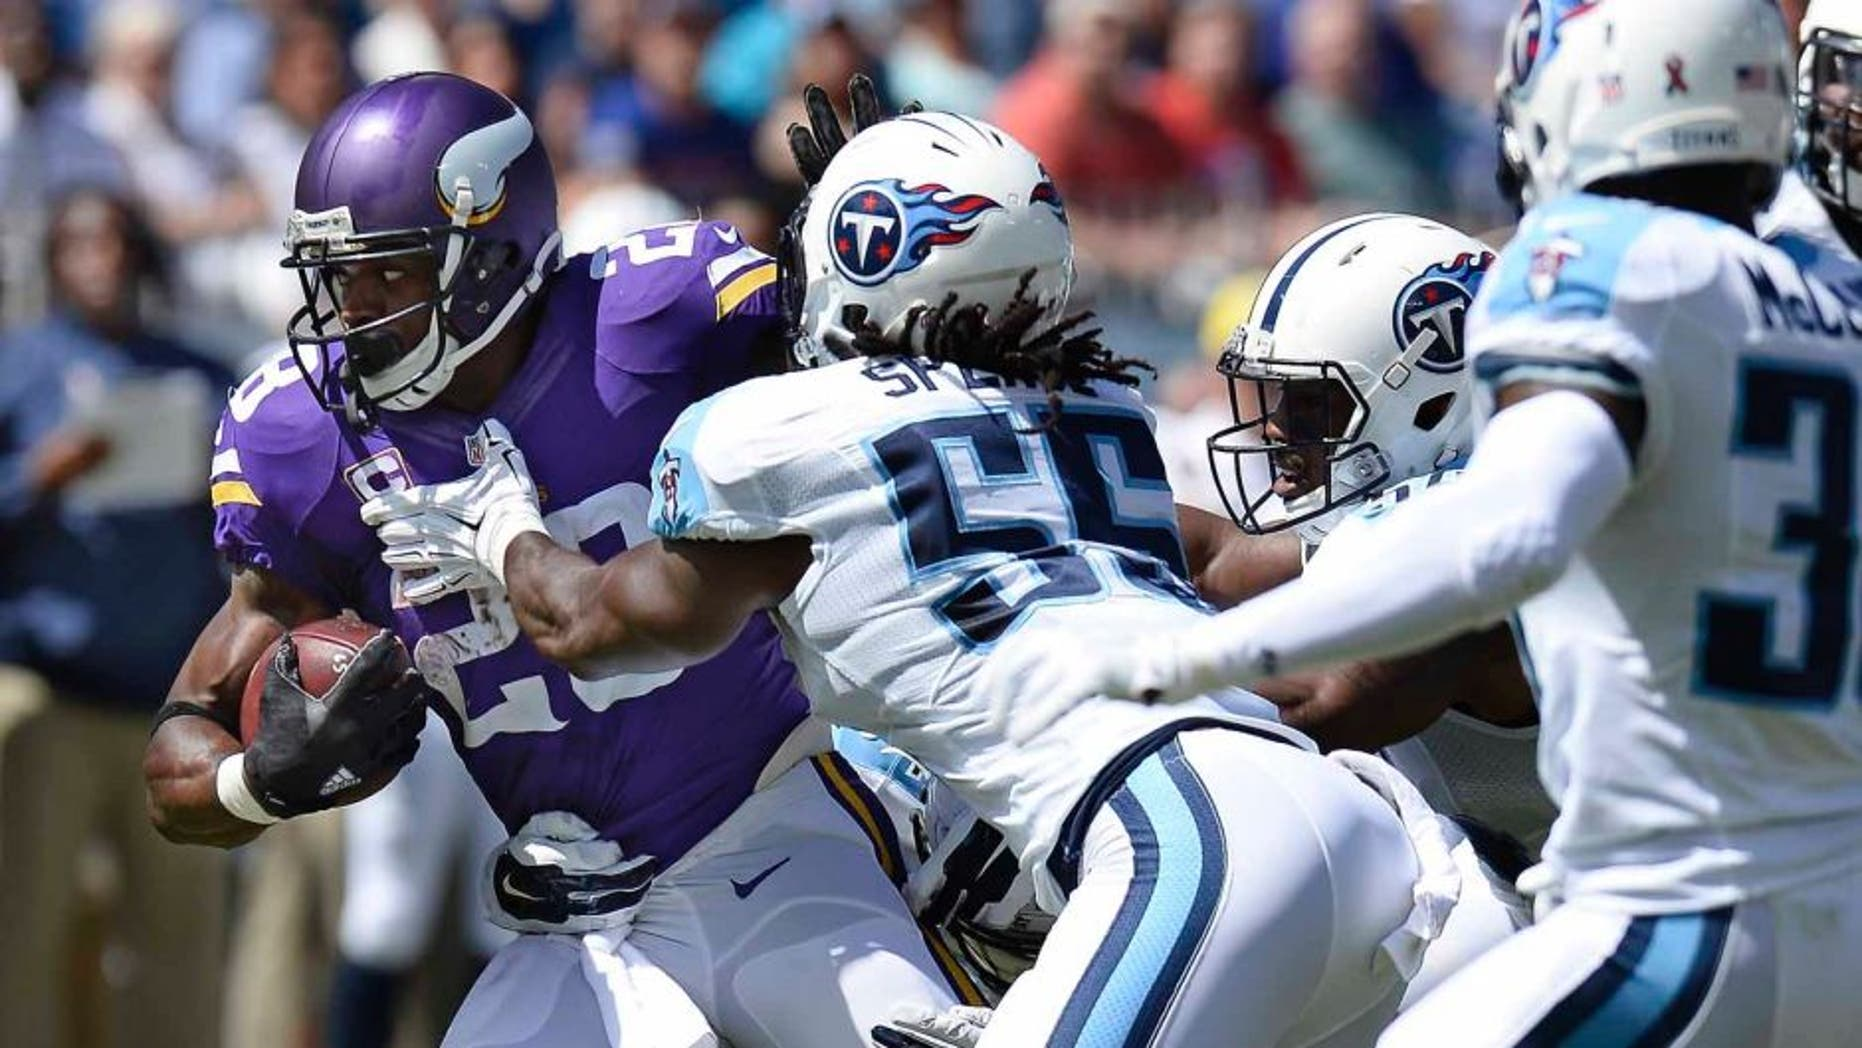 Minnesota Vikings running back Adrian Peterson tries to get past Tennessee Titans defenders including Sean Spence in the first half Sunday, Sept. 11, 2016, in Nashville, Tenn.